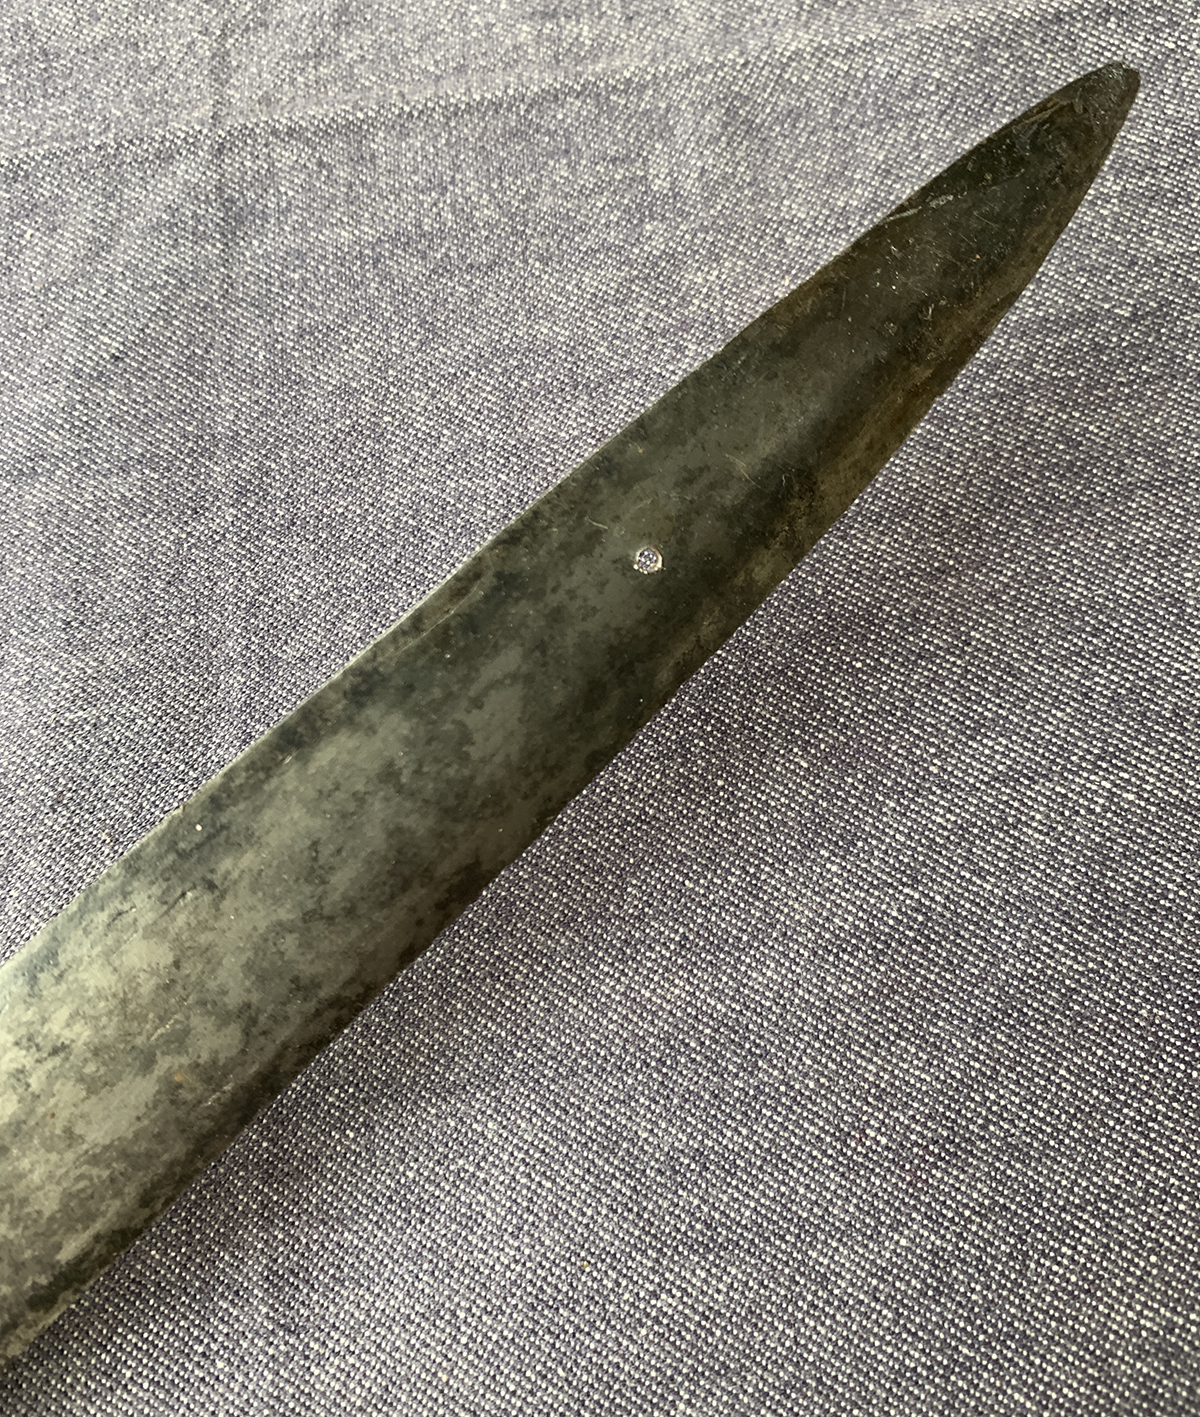 An Indian Talwar sword with single edges straight 85cm blade - Image 5 of 5